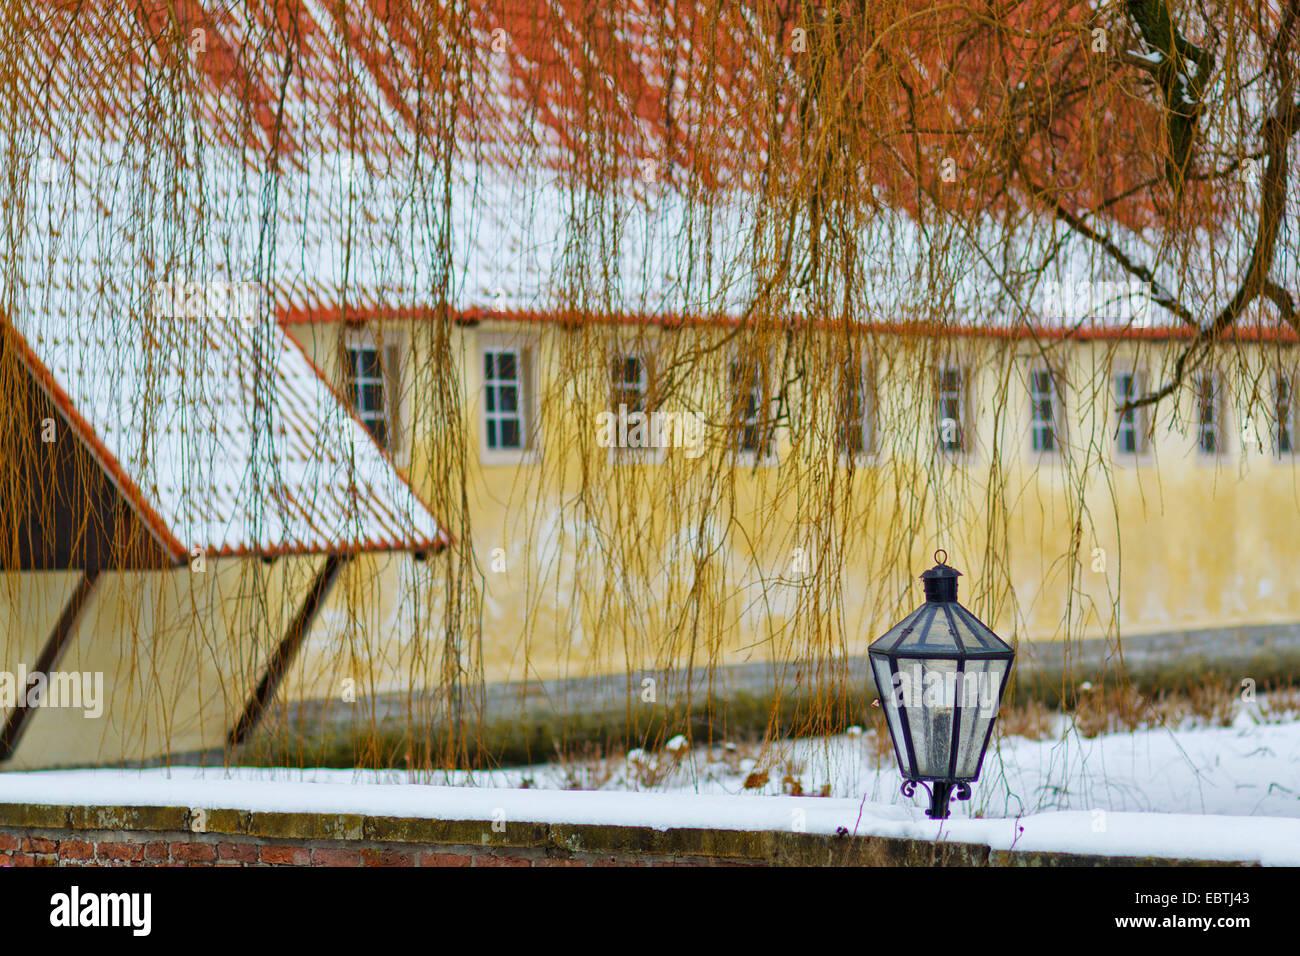 Weeping Willow In Winter Stock Photos & Weeping Willow In Winter ...